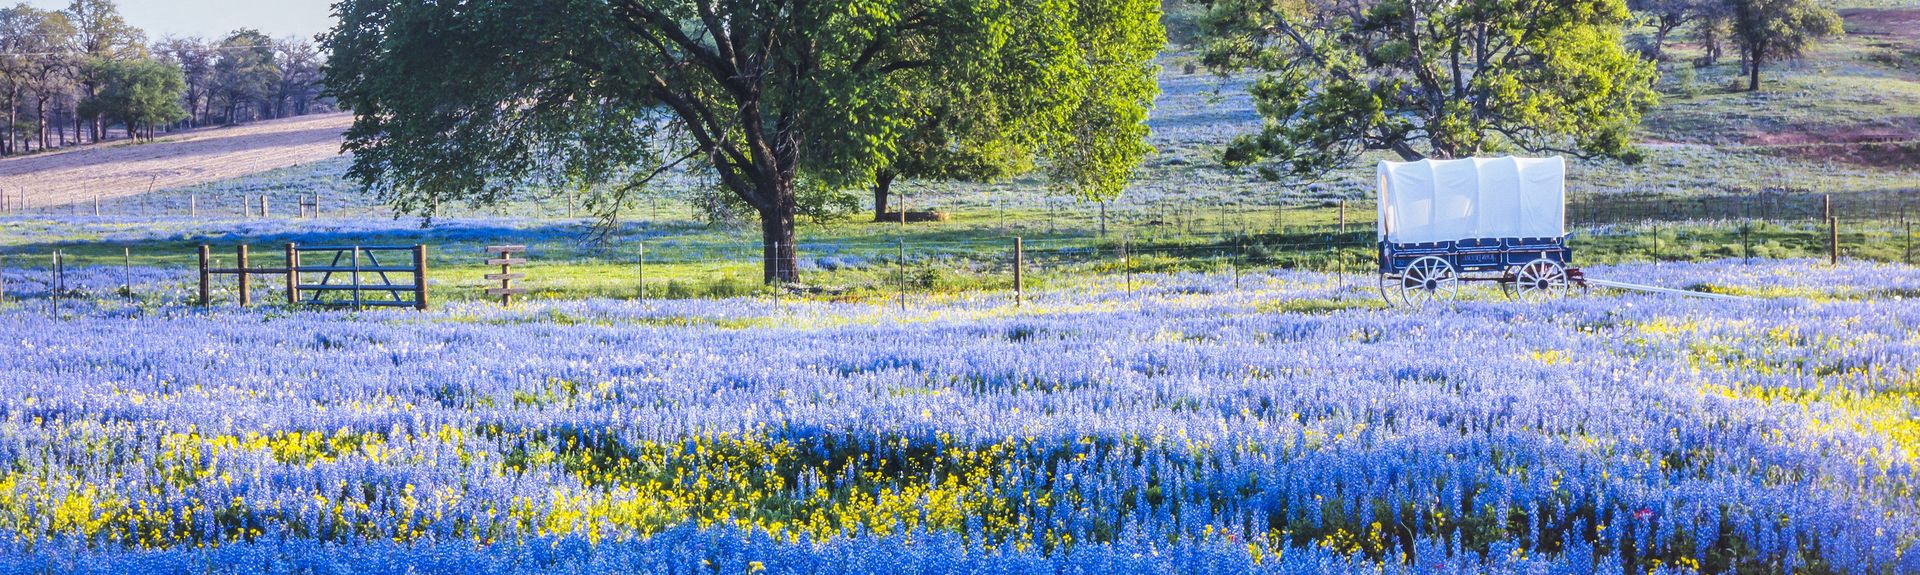 Texas Hill Country, USA